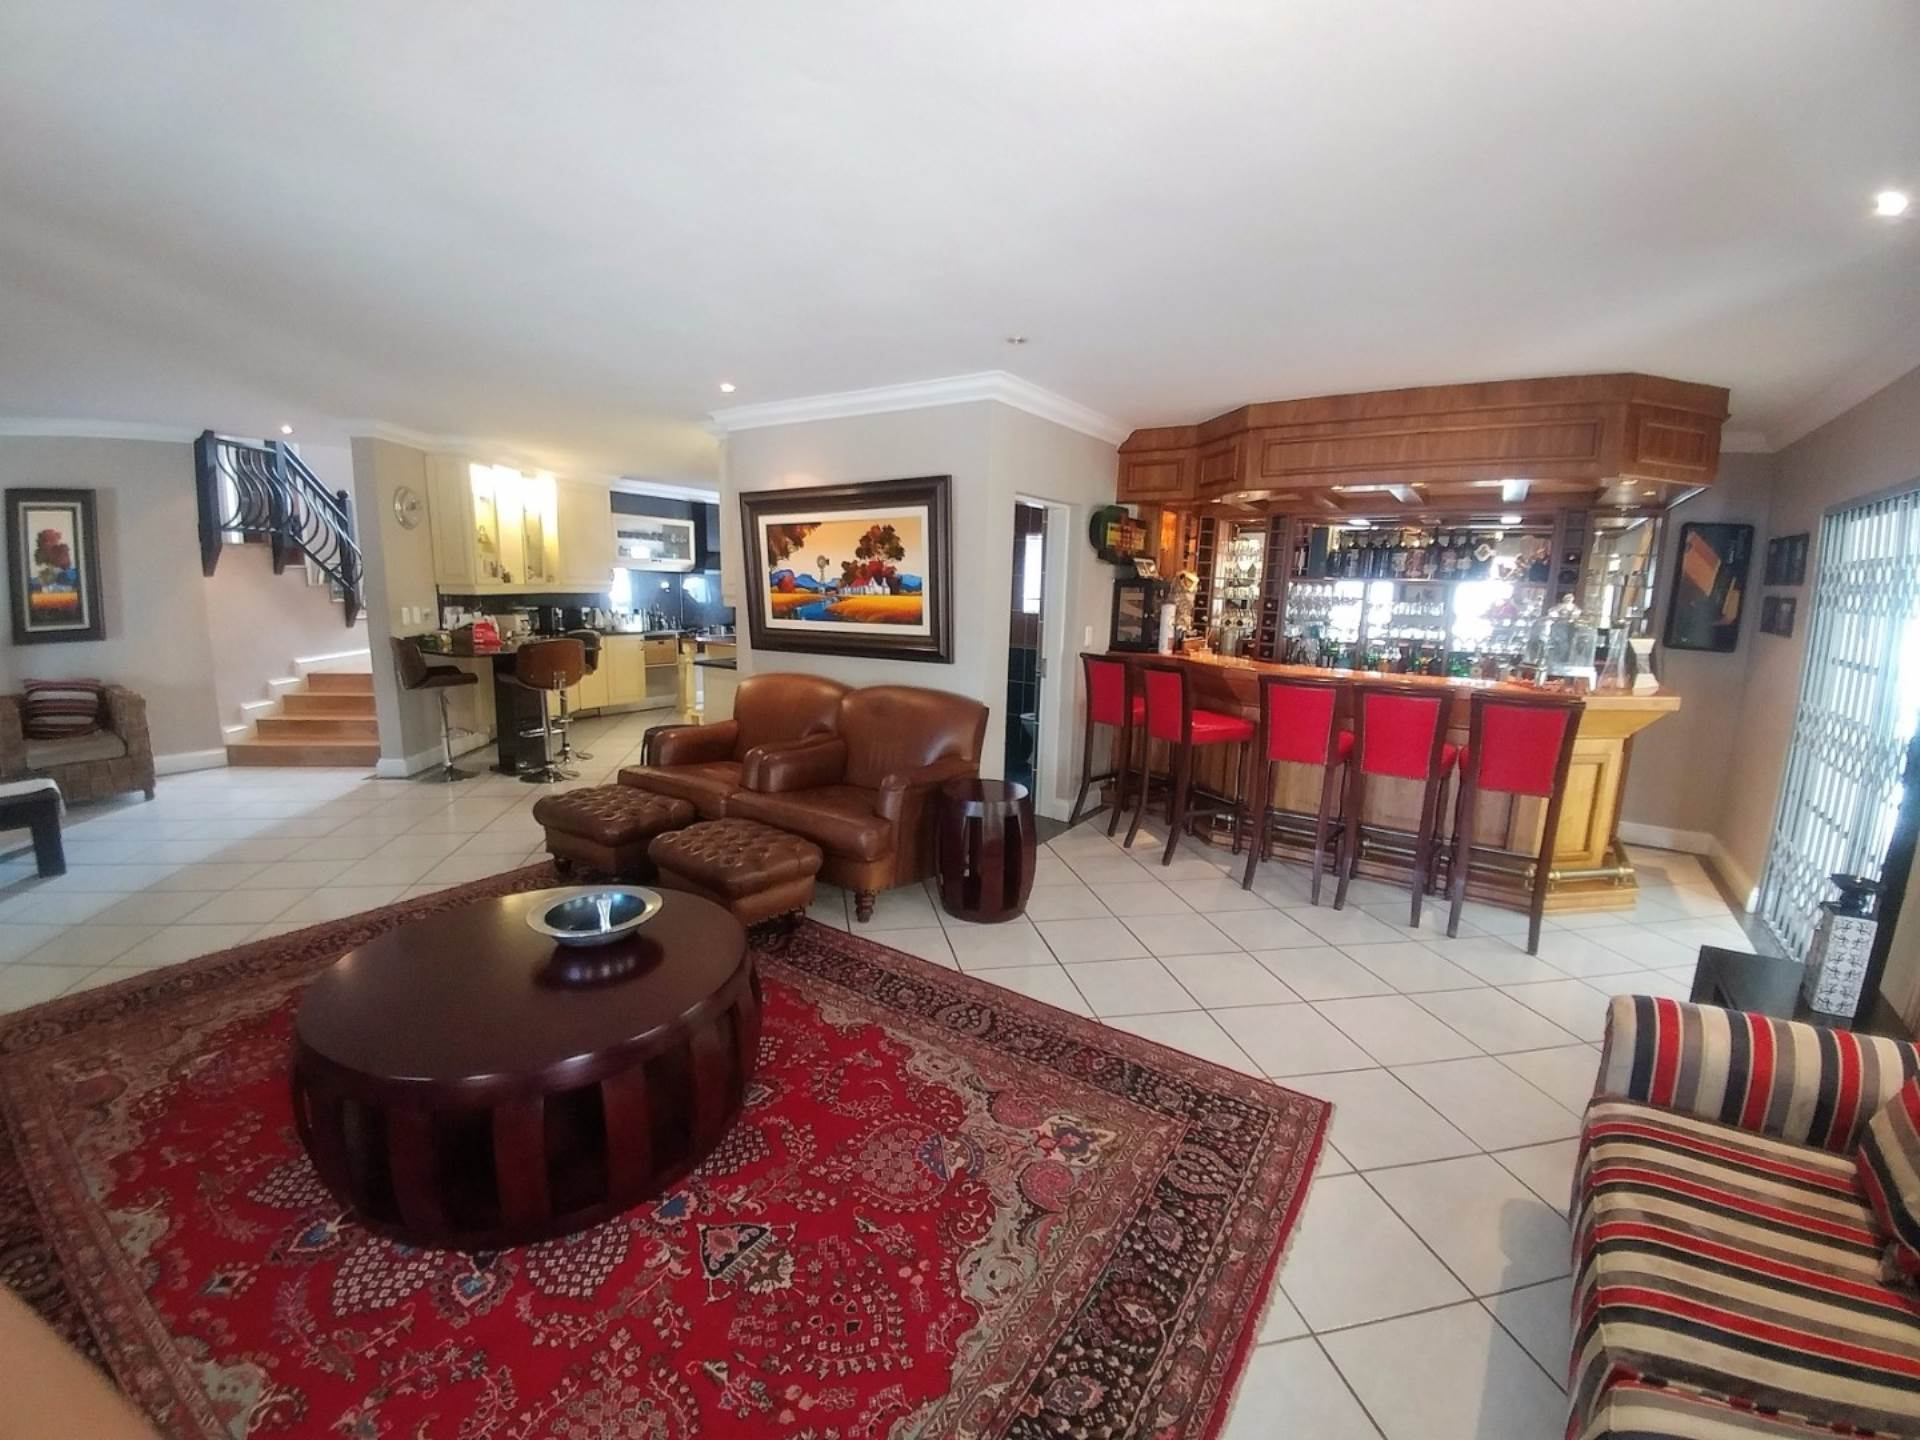 Waterkloof Ridge And Ext property for sale. Ref No: 13534818. Picture no 8